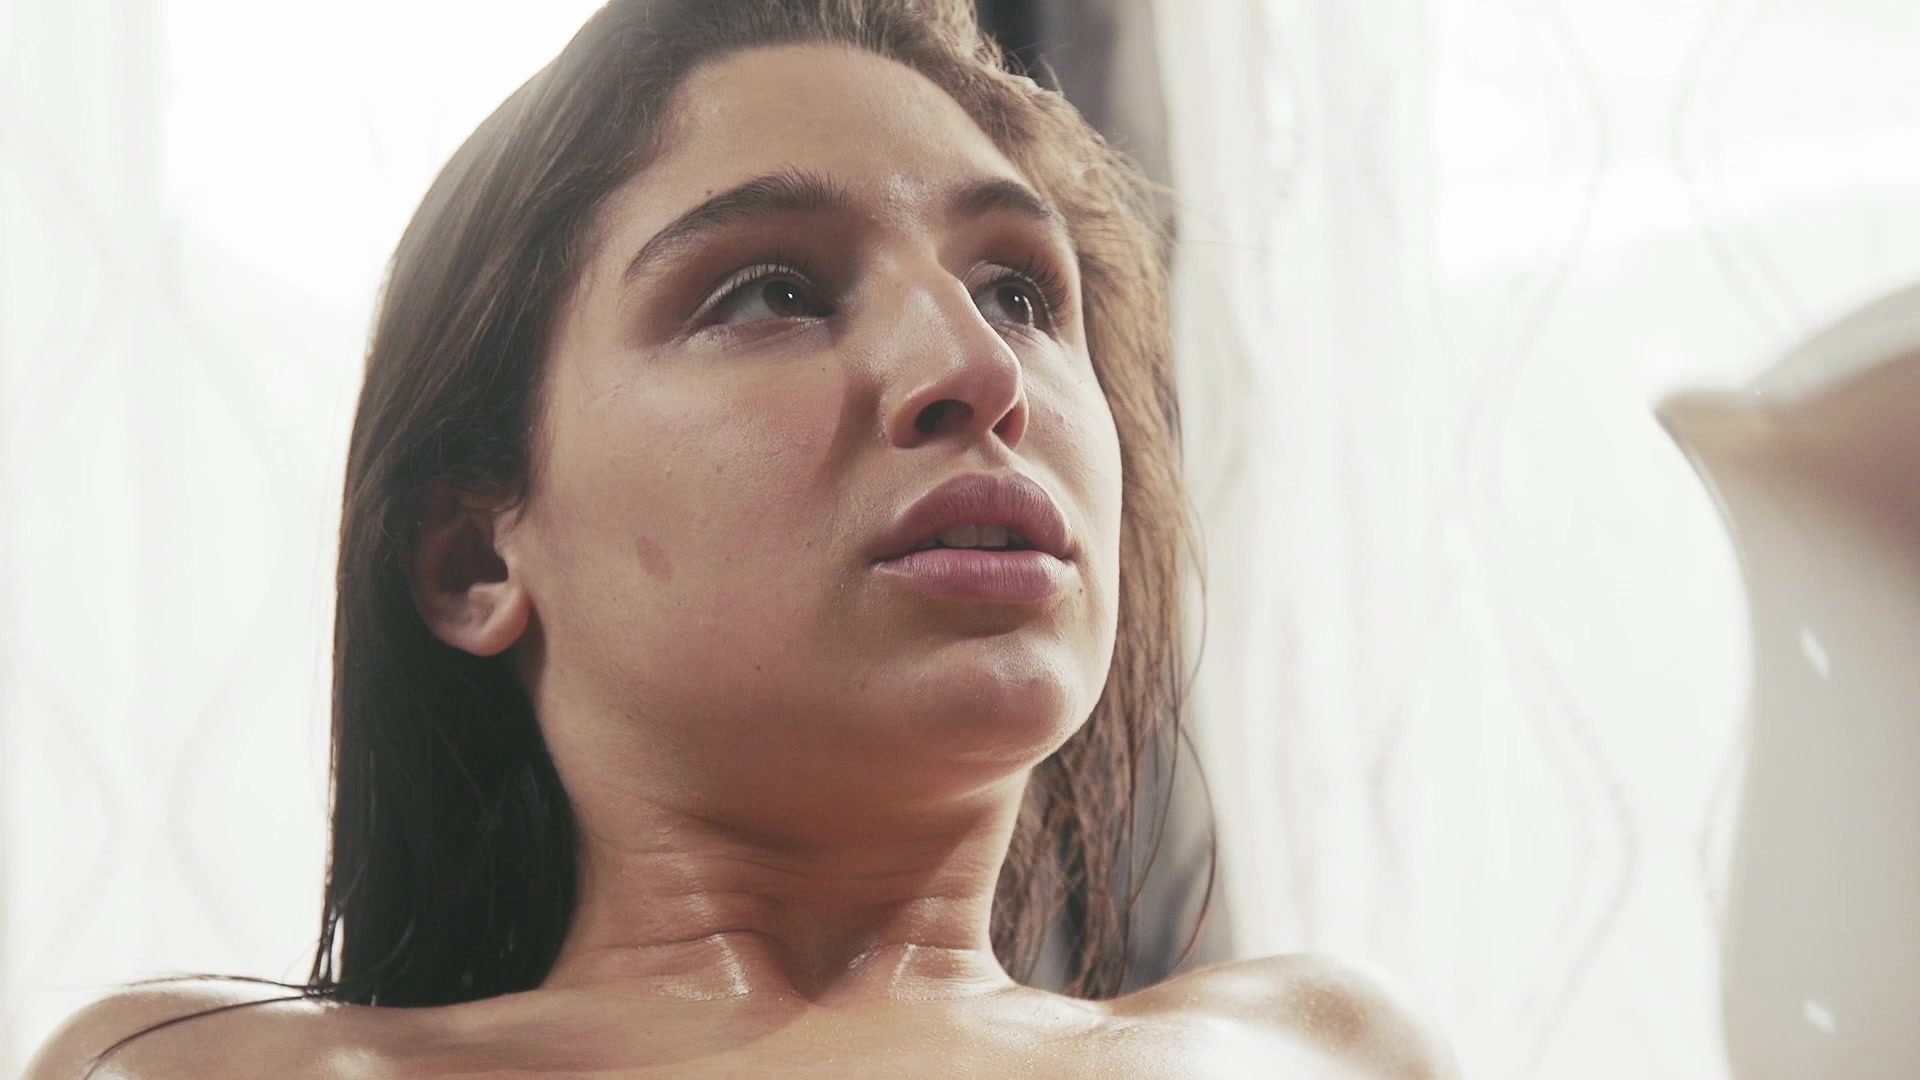 Scene with Abella Danger - image 11 out of 20